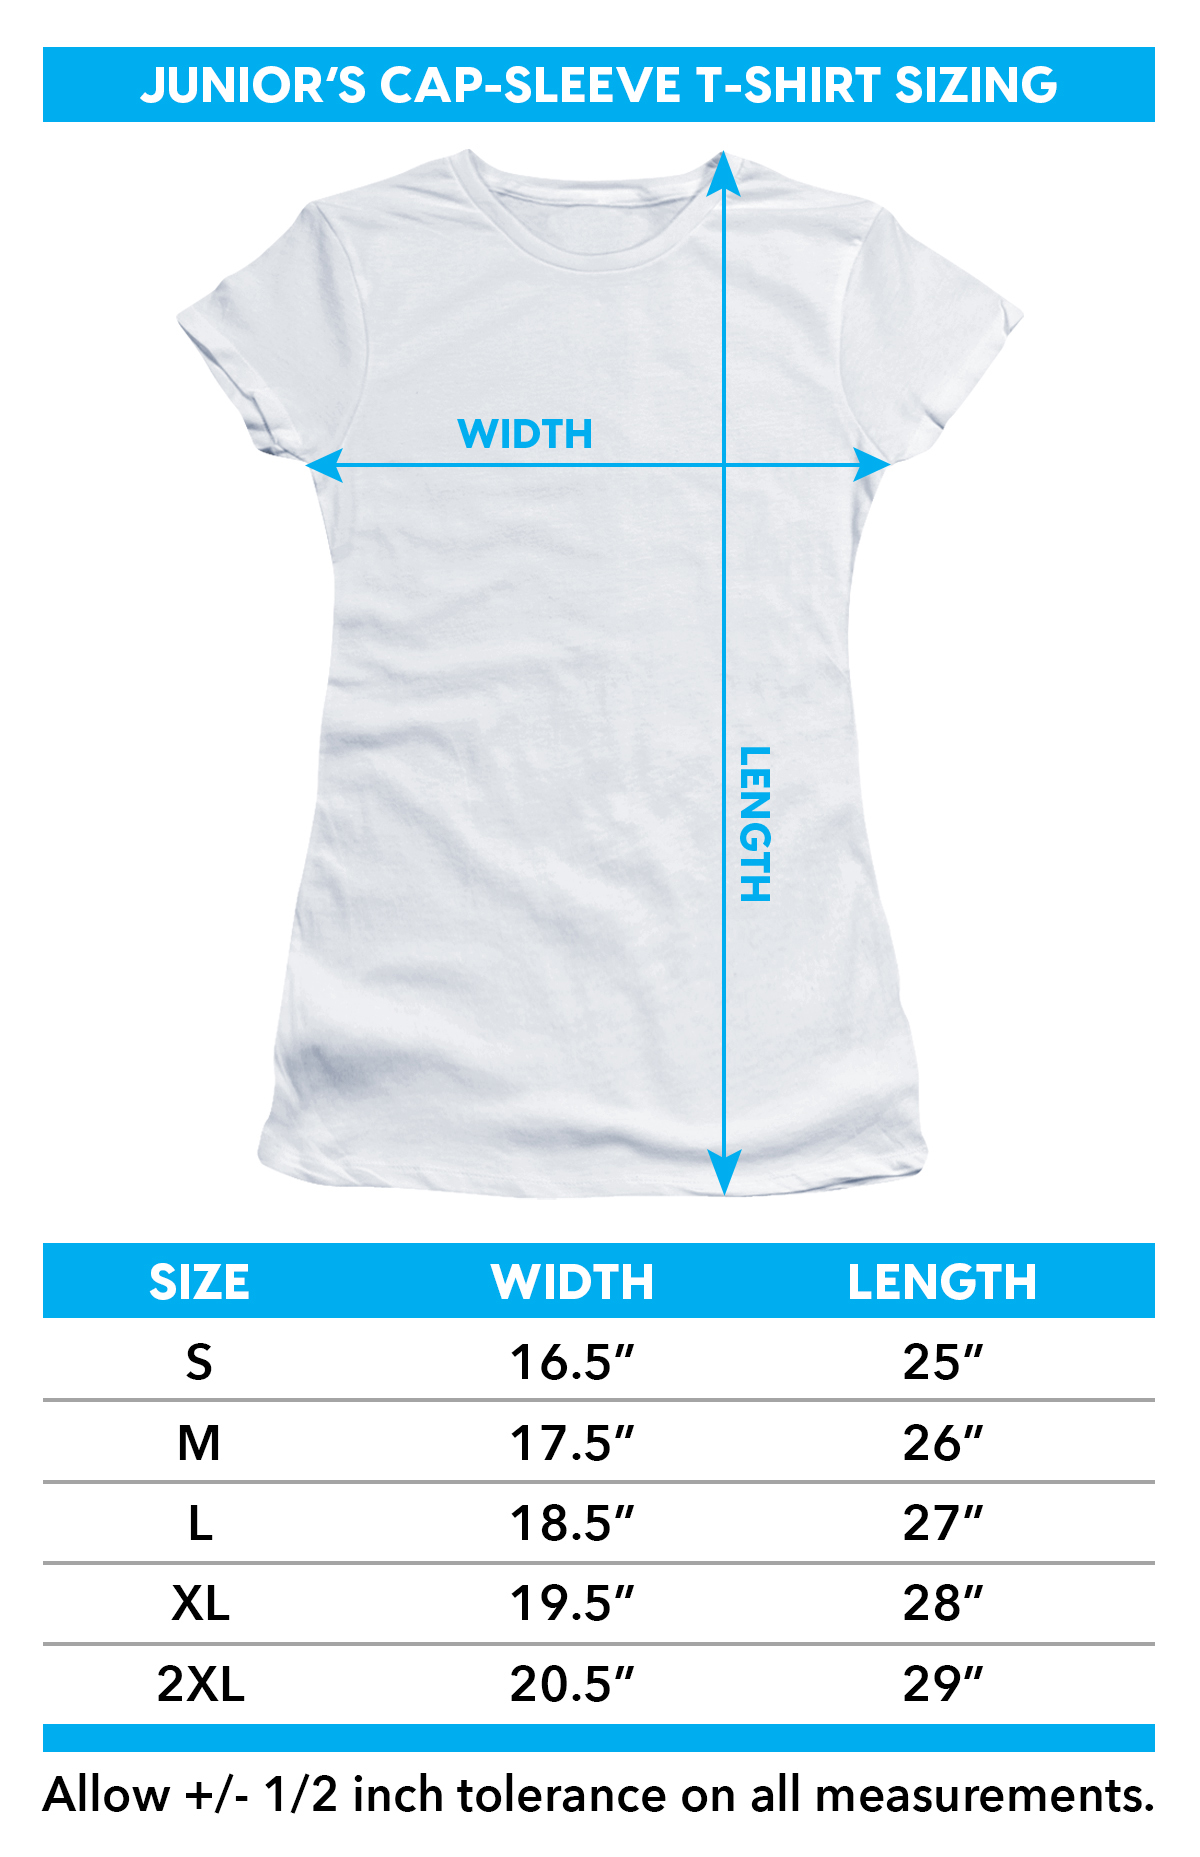 Girls sizing chart for Bon Jovi Girls T-Shirt - Slippery When Wet Girl TRV-BAND271-JS